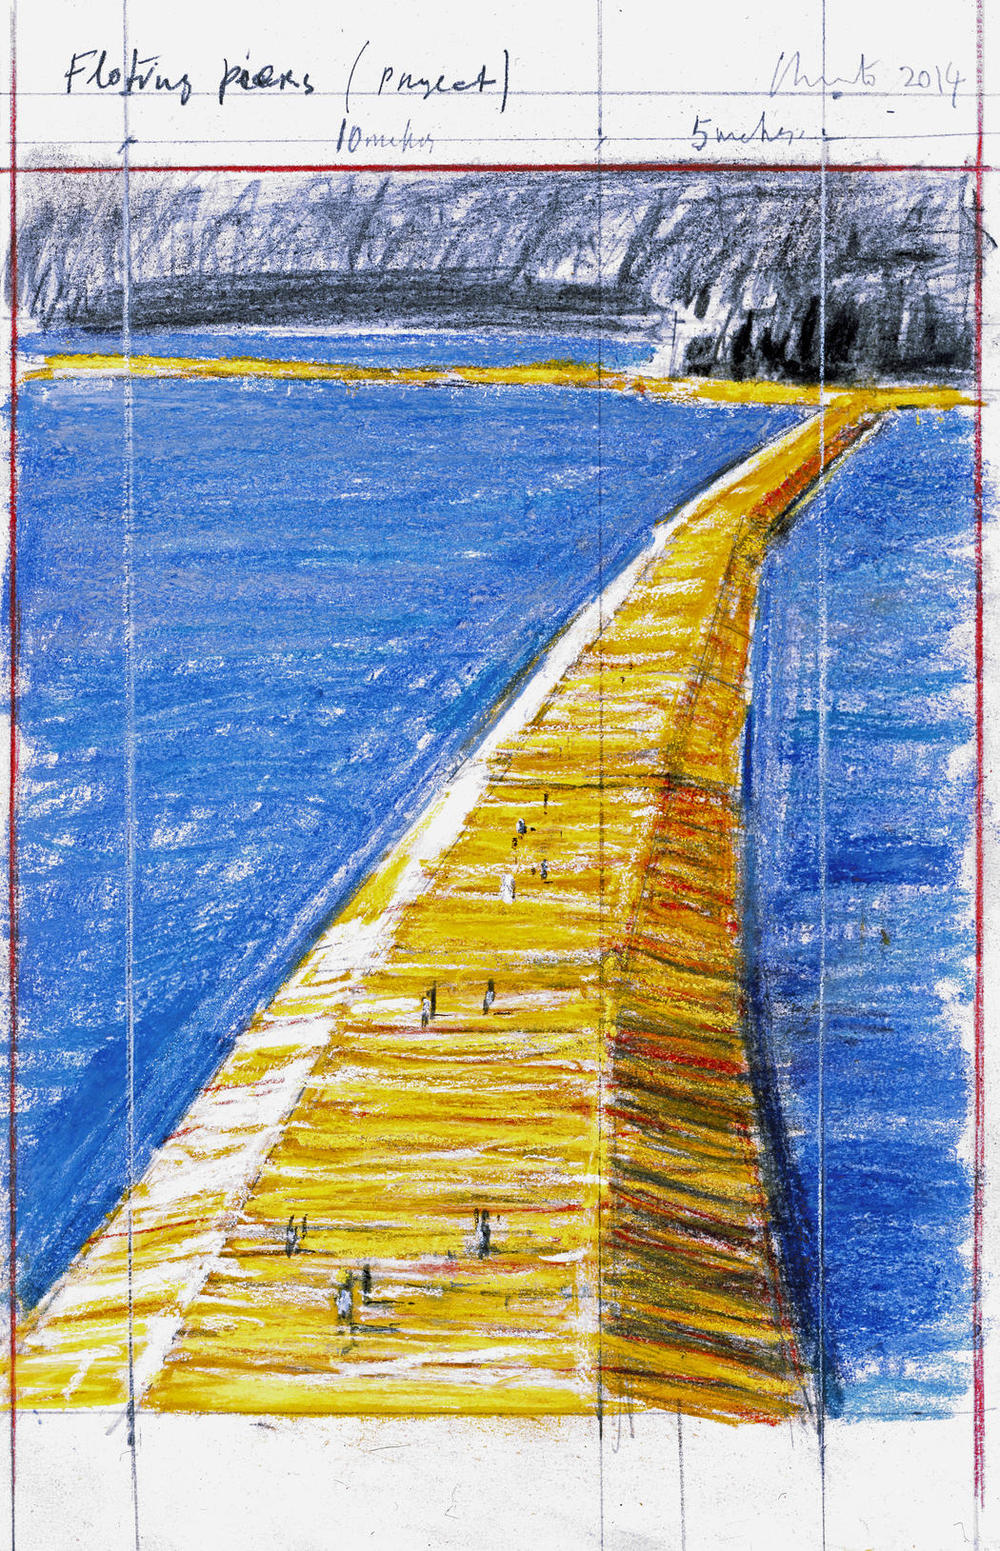 Christo Floating Piers (Project) Drawing 2014